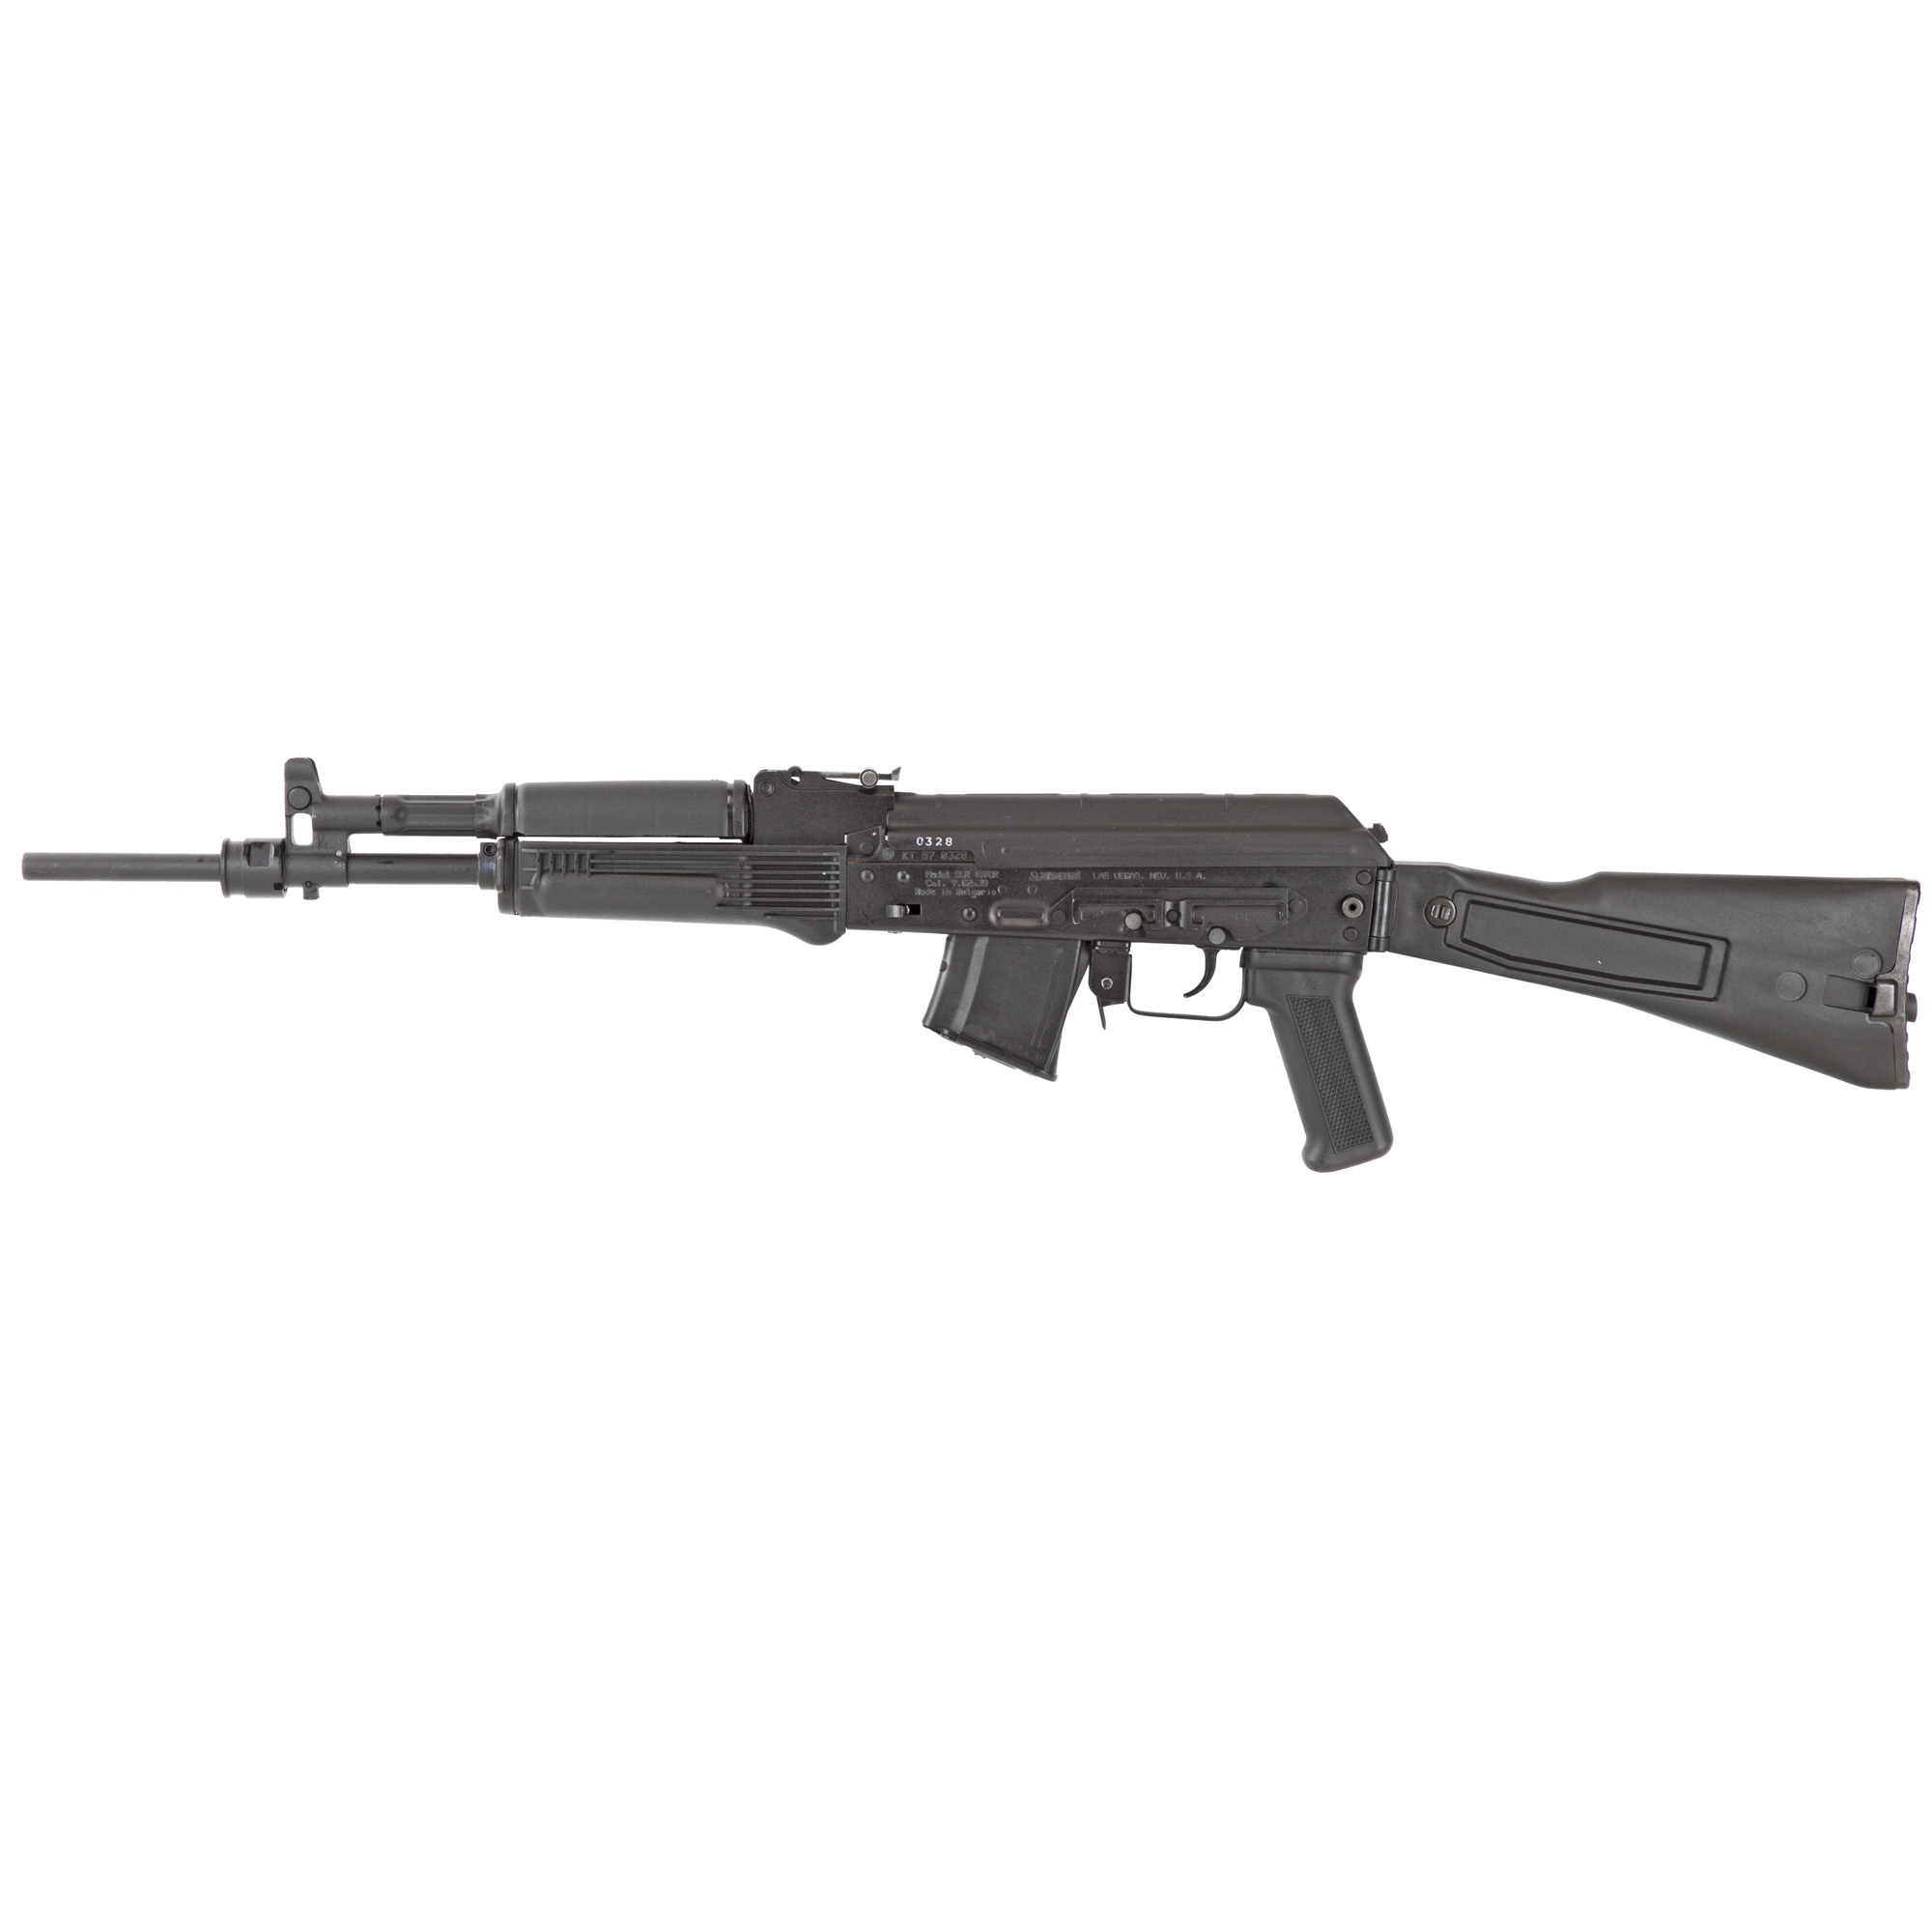 """SLR-107 7.62x39 caliber rifles are top notch"""" Bulgarian made"""" stamped receiver"""" semi-automatic modern sporting rifles remanufactured by Arsenal"""" Inc. in Las Vegas"""" Nevada."""